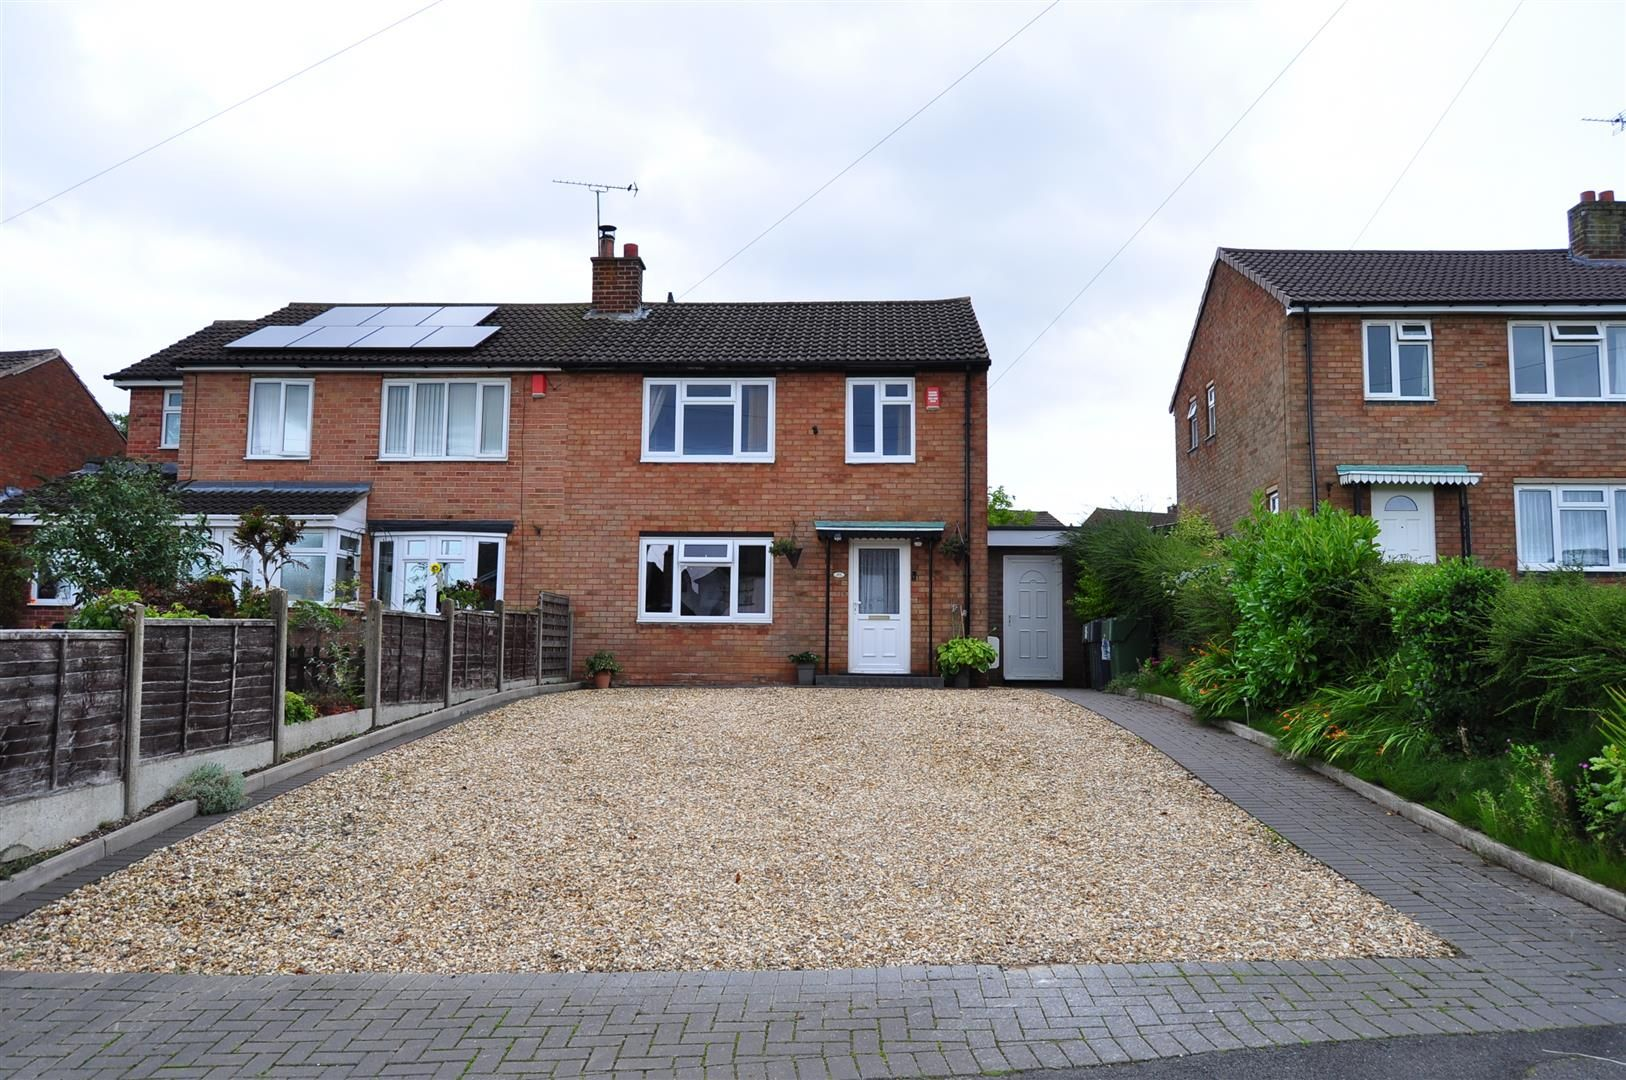 3 bed semi-detached for sale in Romsley 22